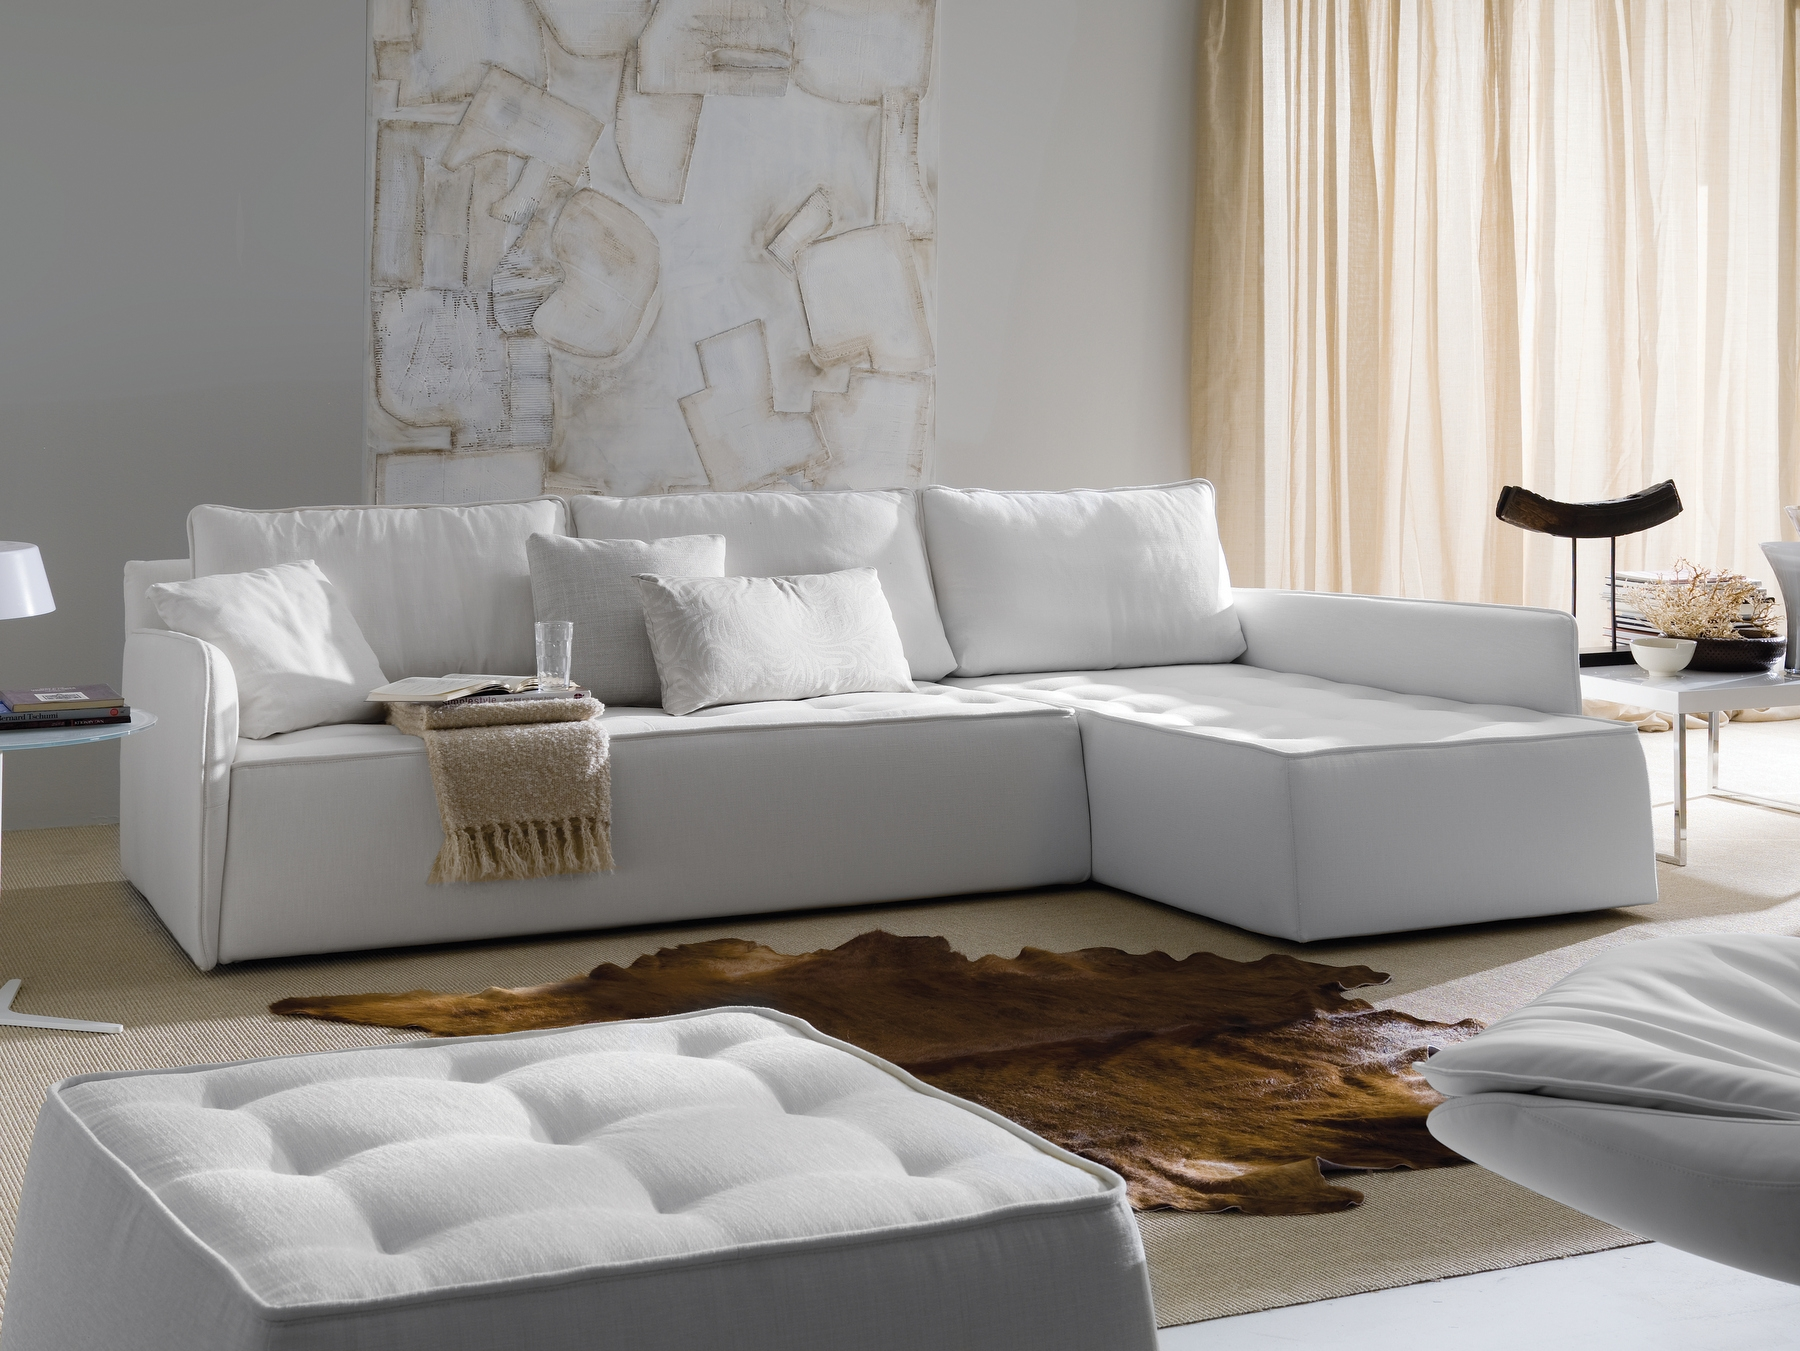 Antares Corner Sofa Bontempi Casa Design Marco Corti Within Sofa With Removable Cover (Image 1 of 15)